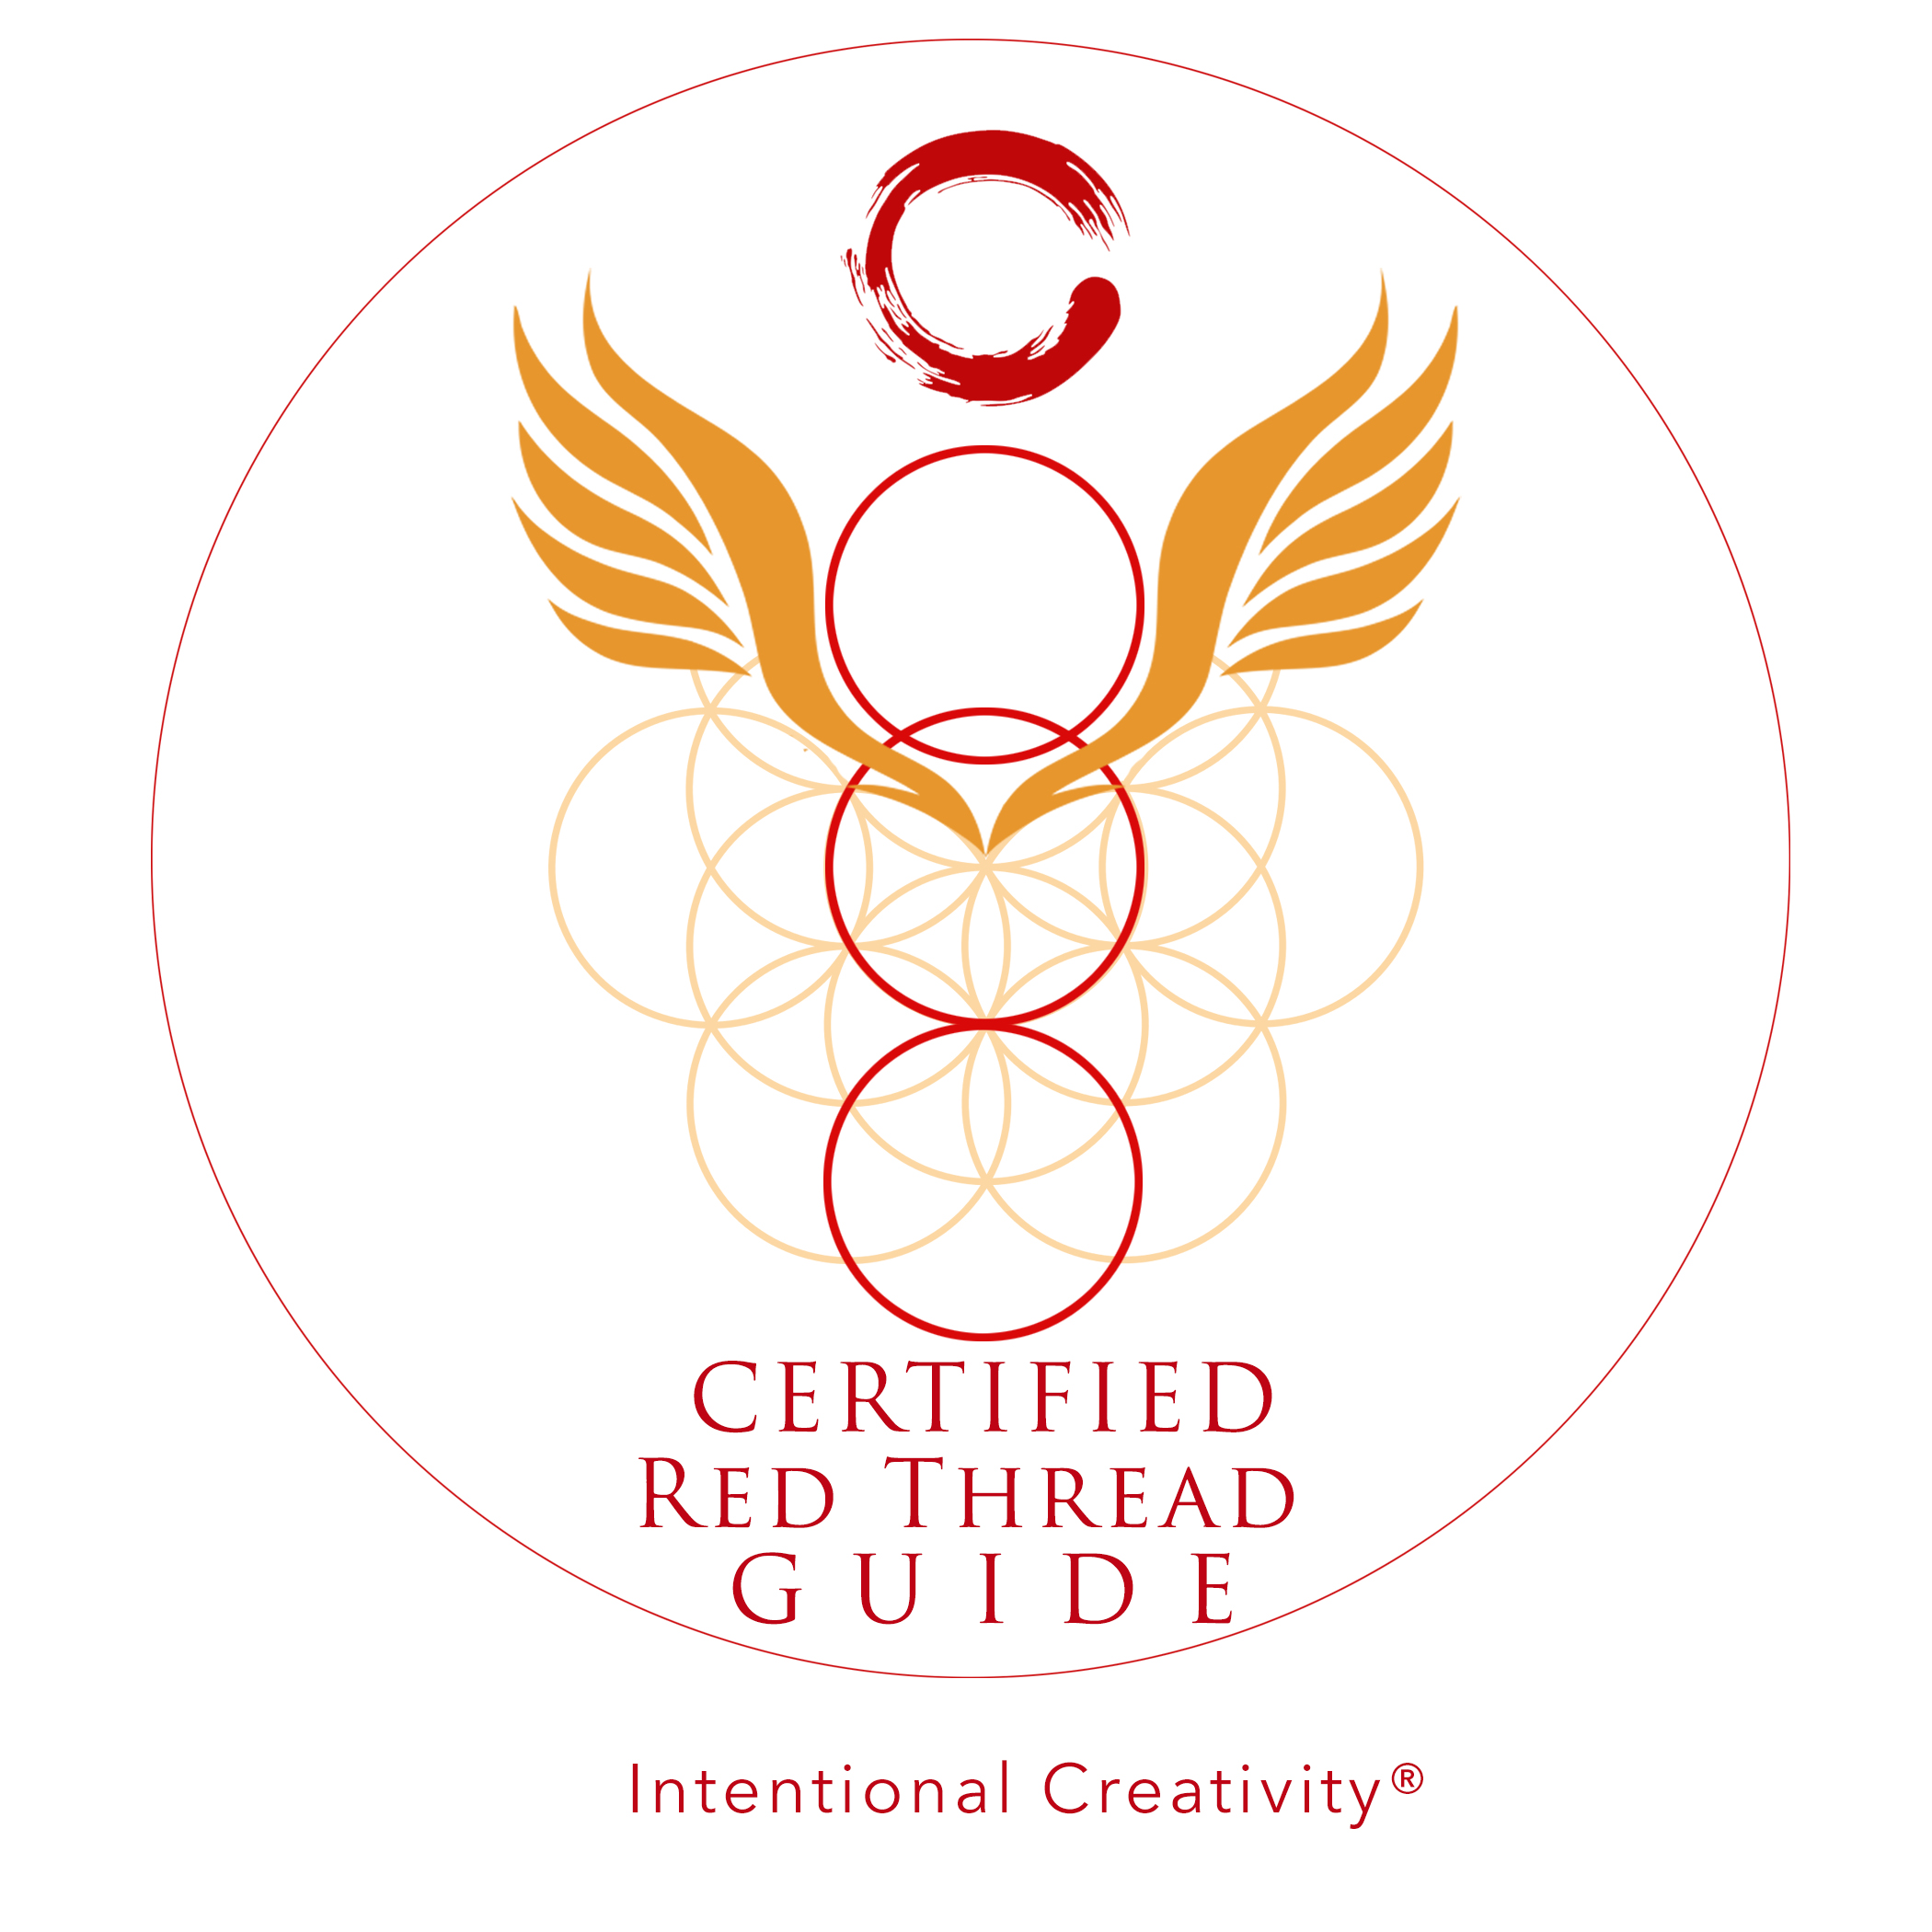 Red Thread Guide Certified